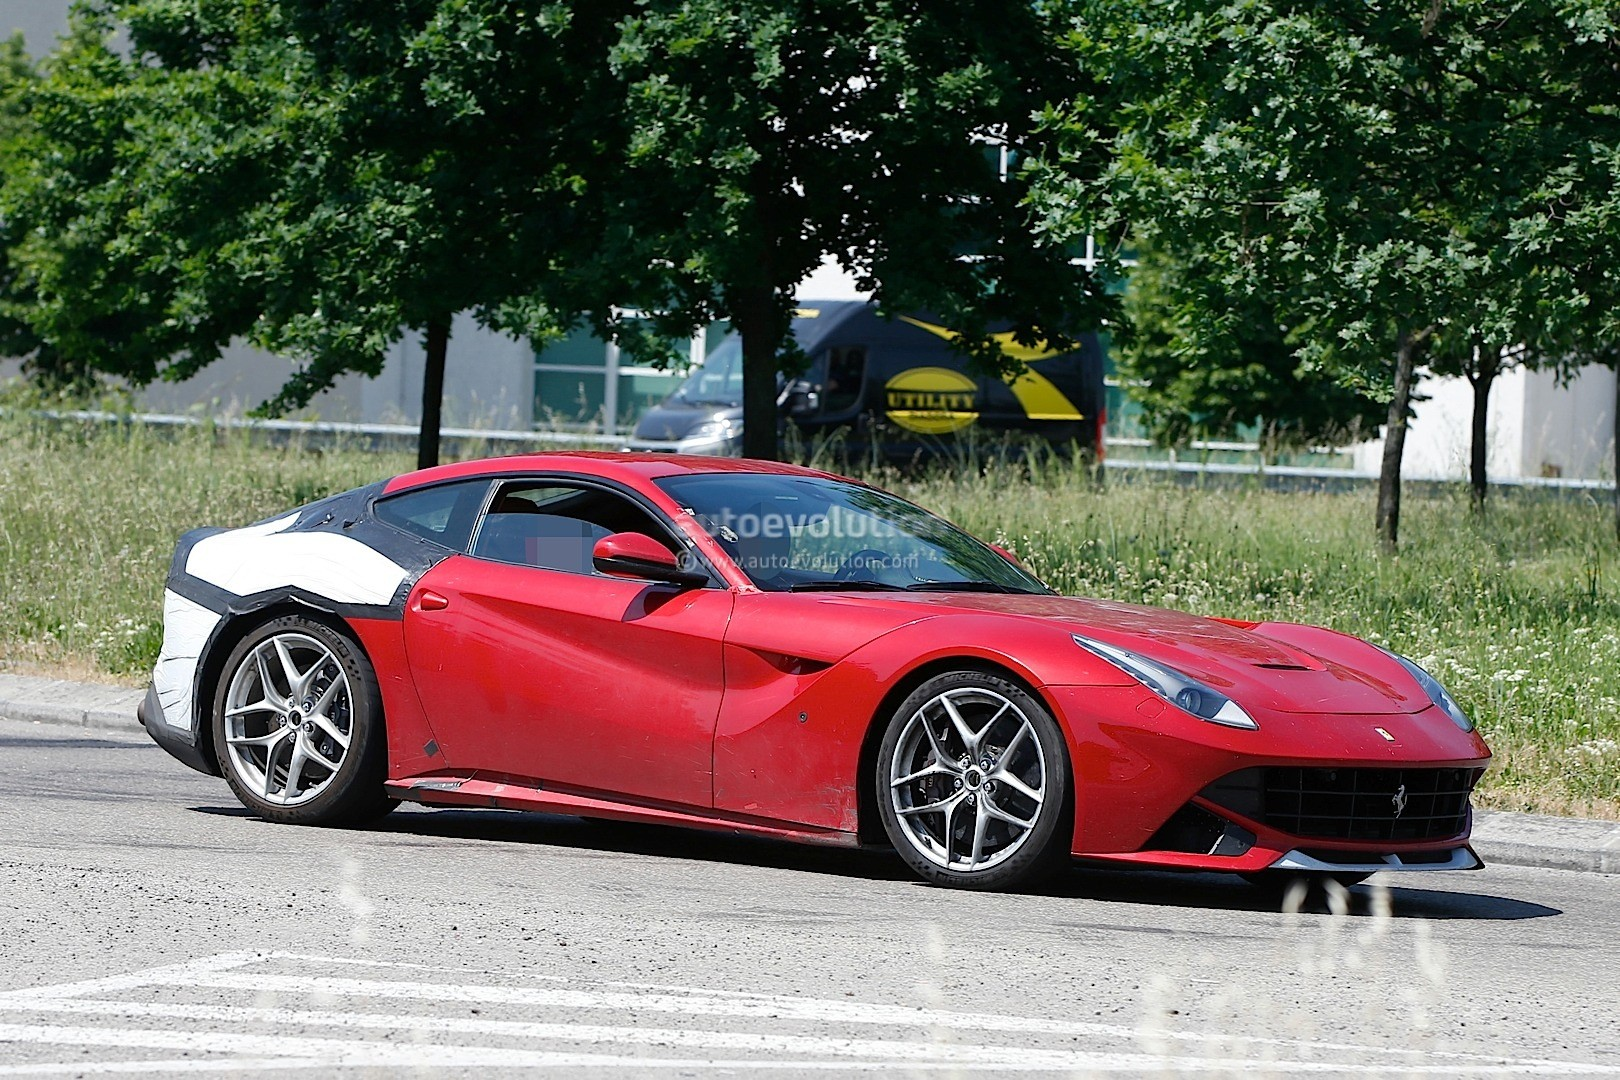 2018 ferrari f12 m specifications allegedly leaked on ferrari chat